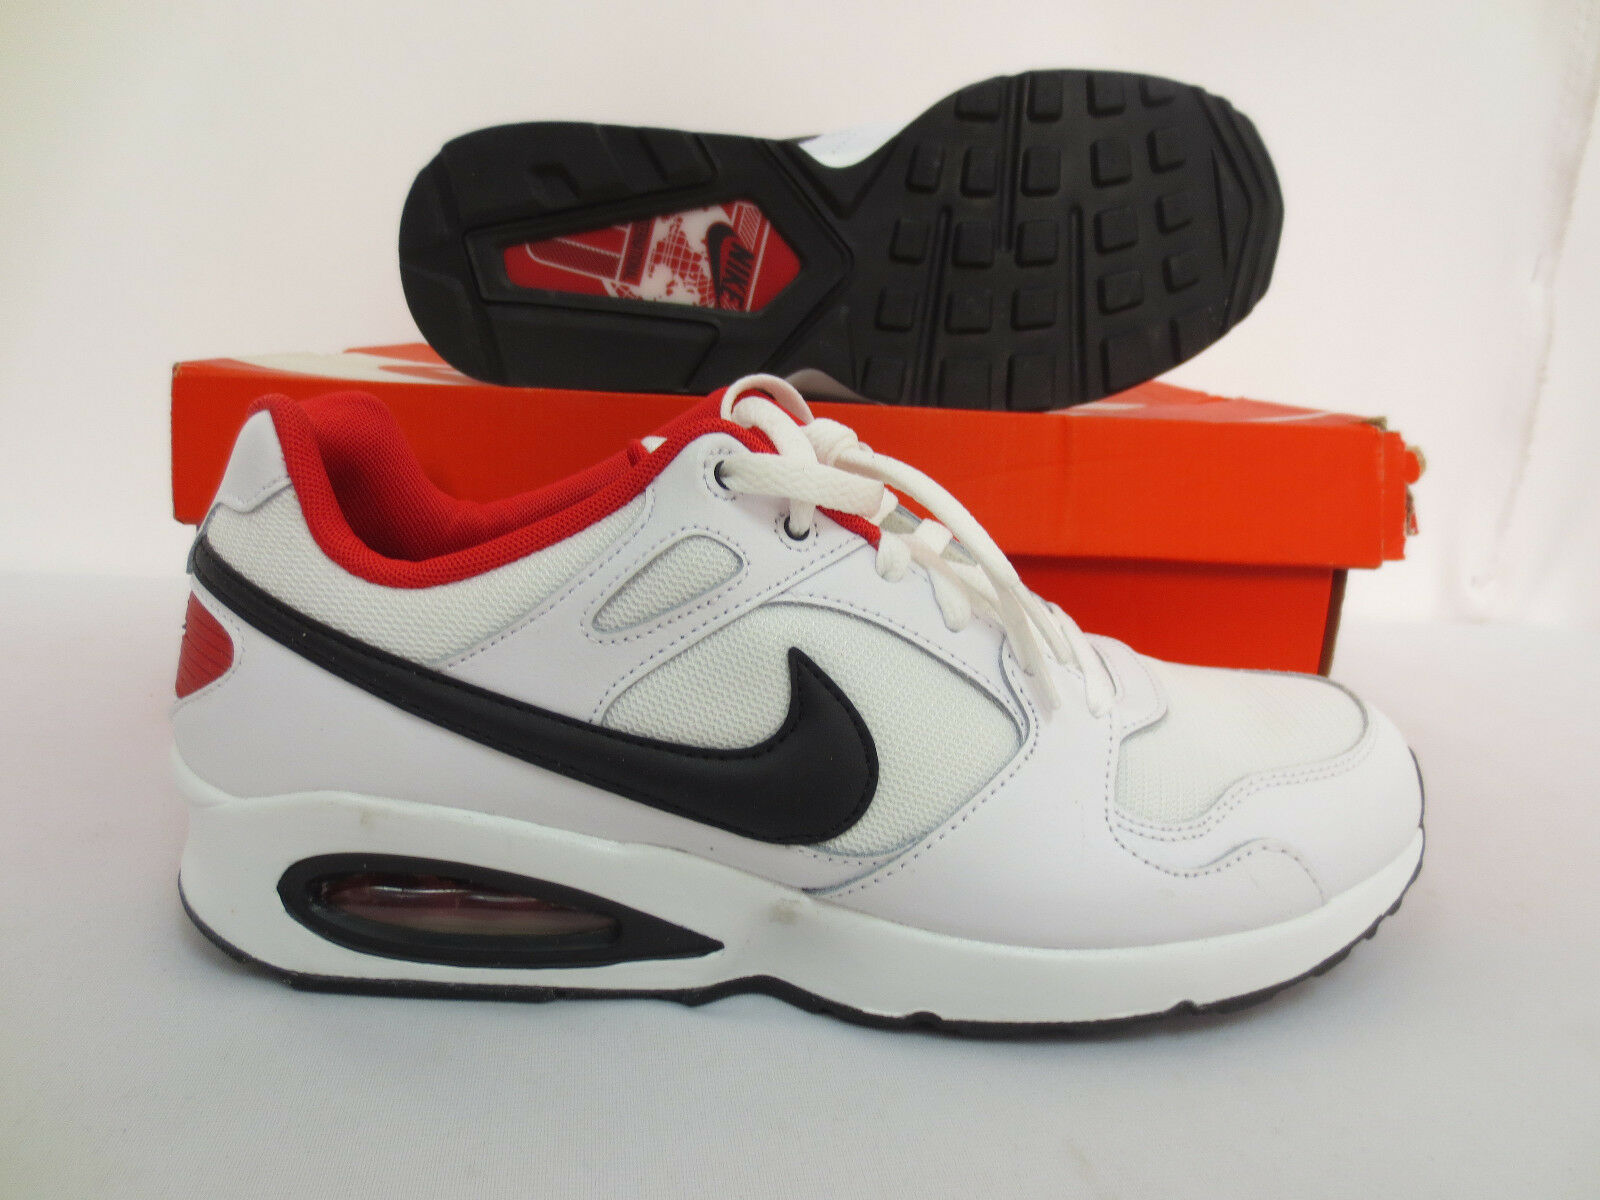 NIKE AIR MAX COLISEUM RACER SIZE 11 SHOES SNEAKERS 555423 102 NEW FASHION COOL